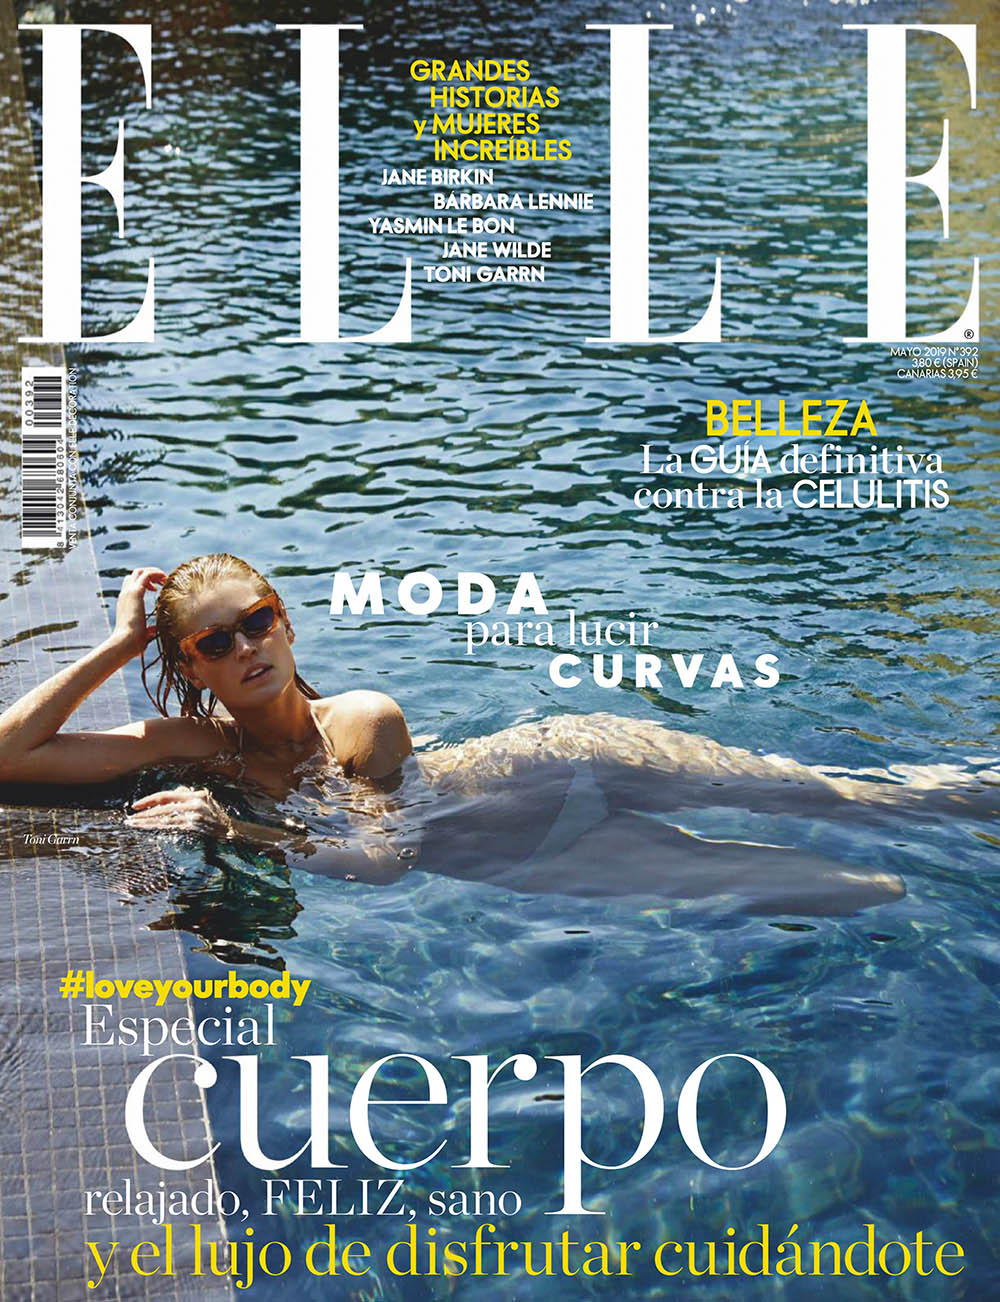 Toni Garrn covers Elle Spain May 2019 by Xavi Gordo